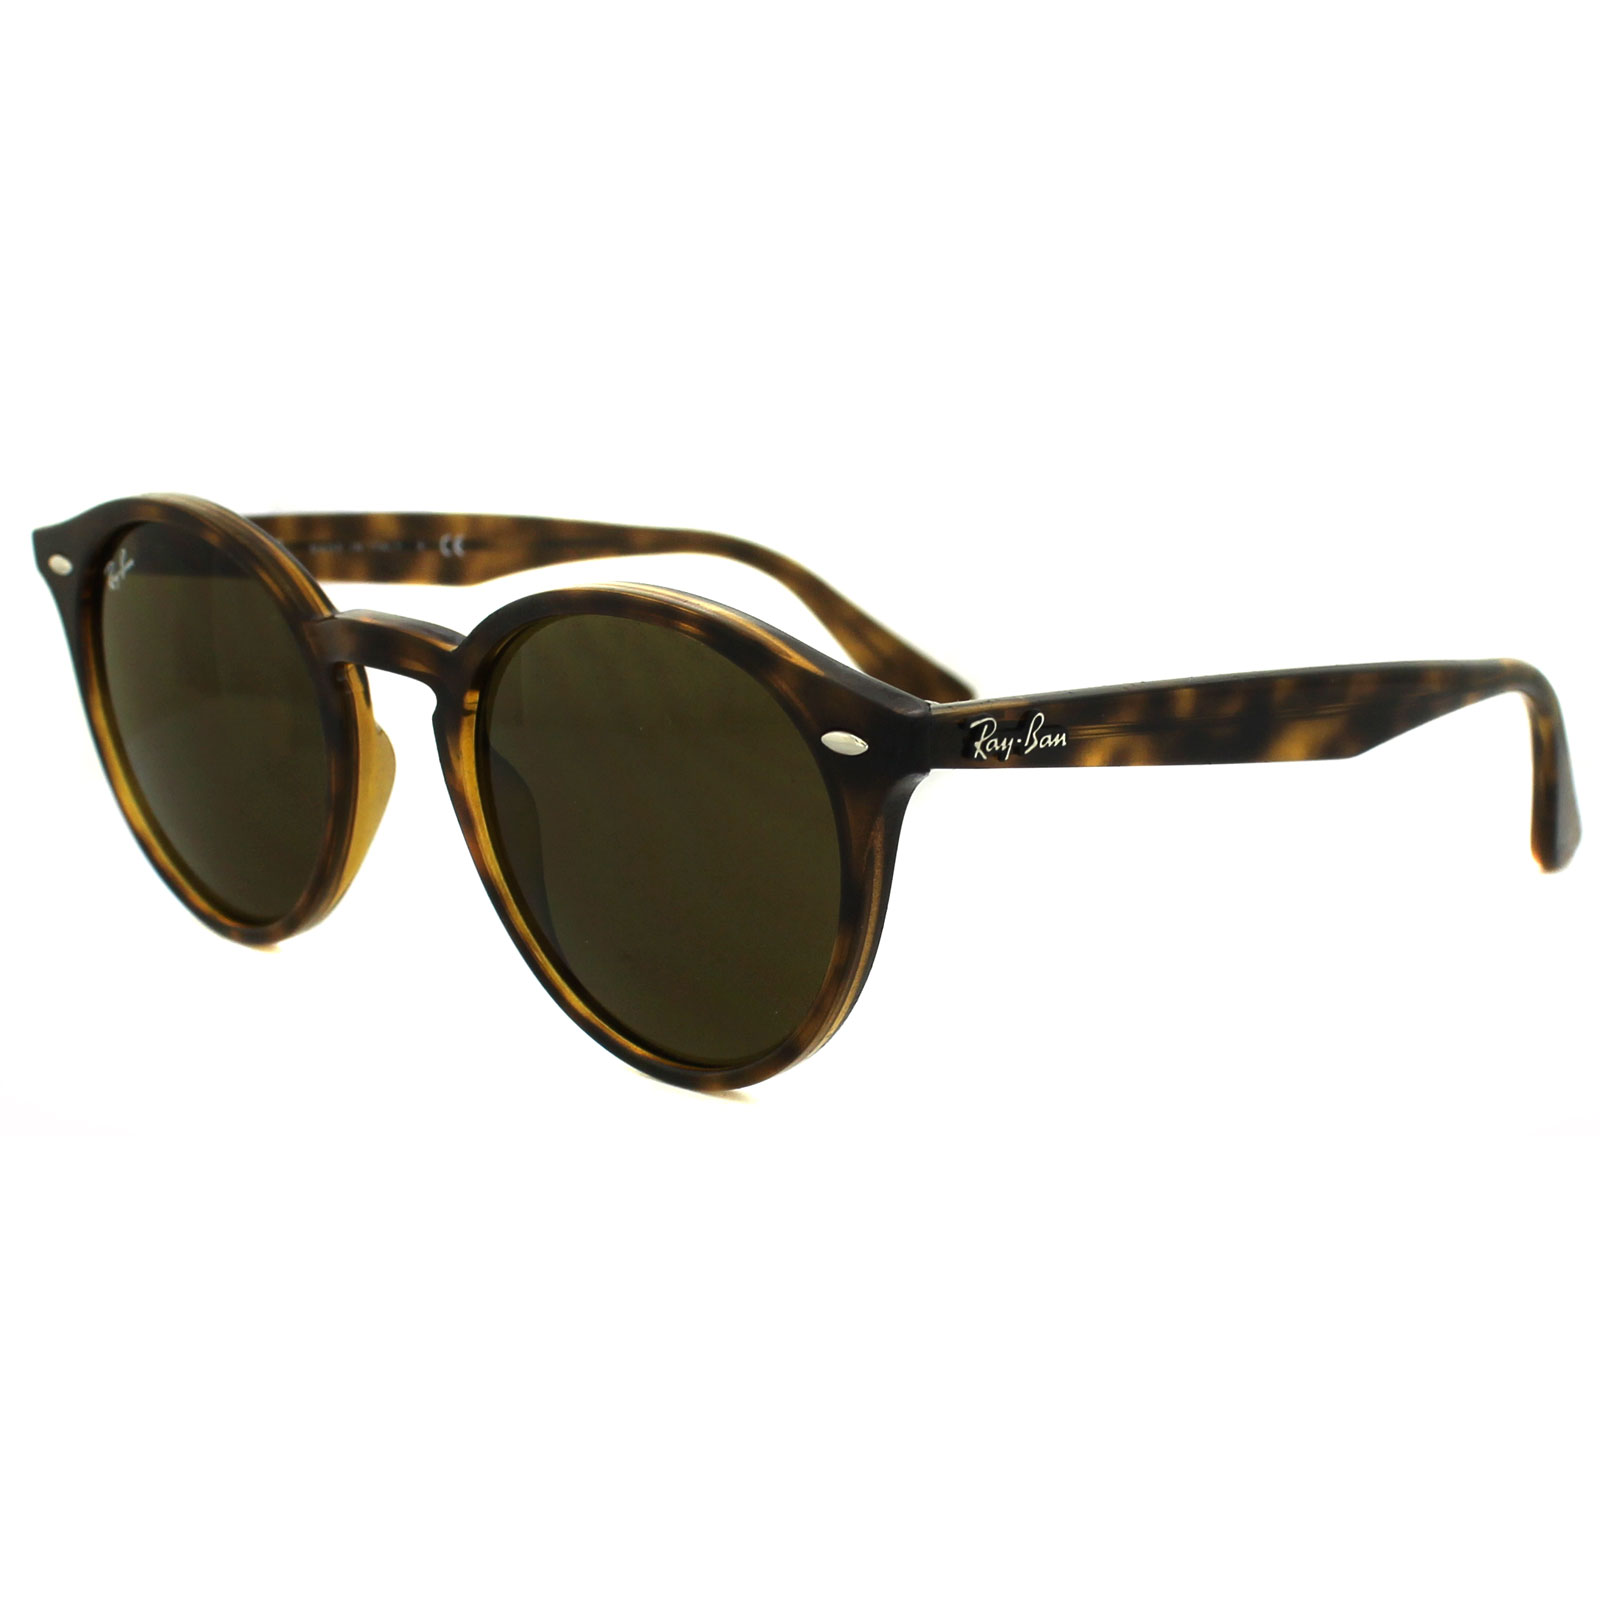 ray ban sunglasses 2180 710 73 tortoise brown b 15 ebay. Black Bedroom Furniture Sets. Home Design Ideas